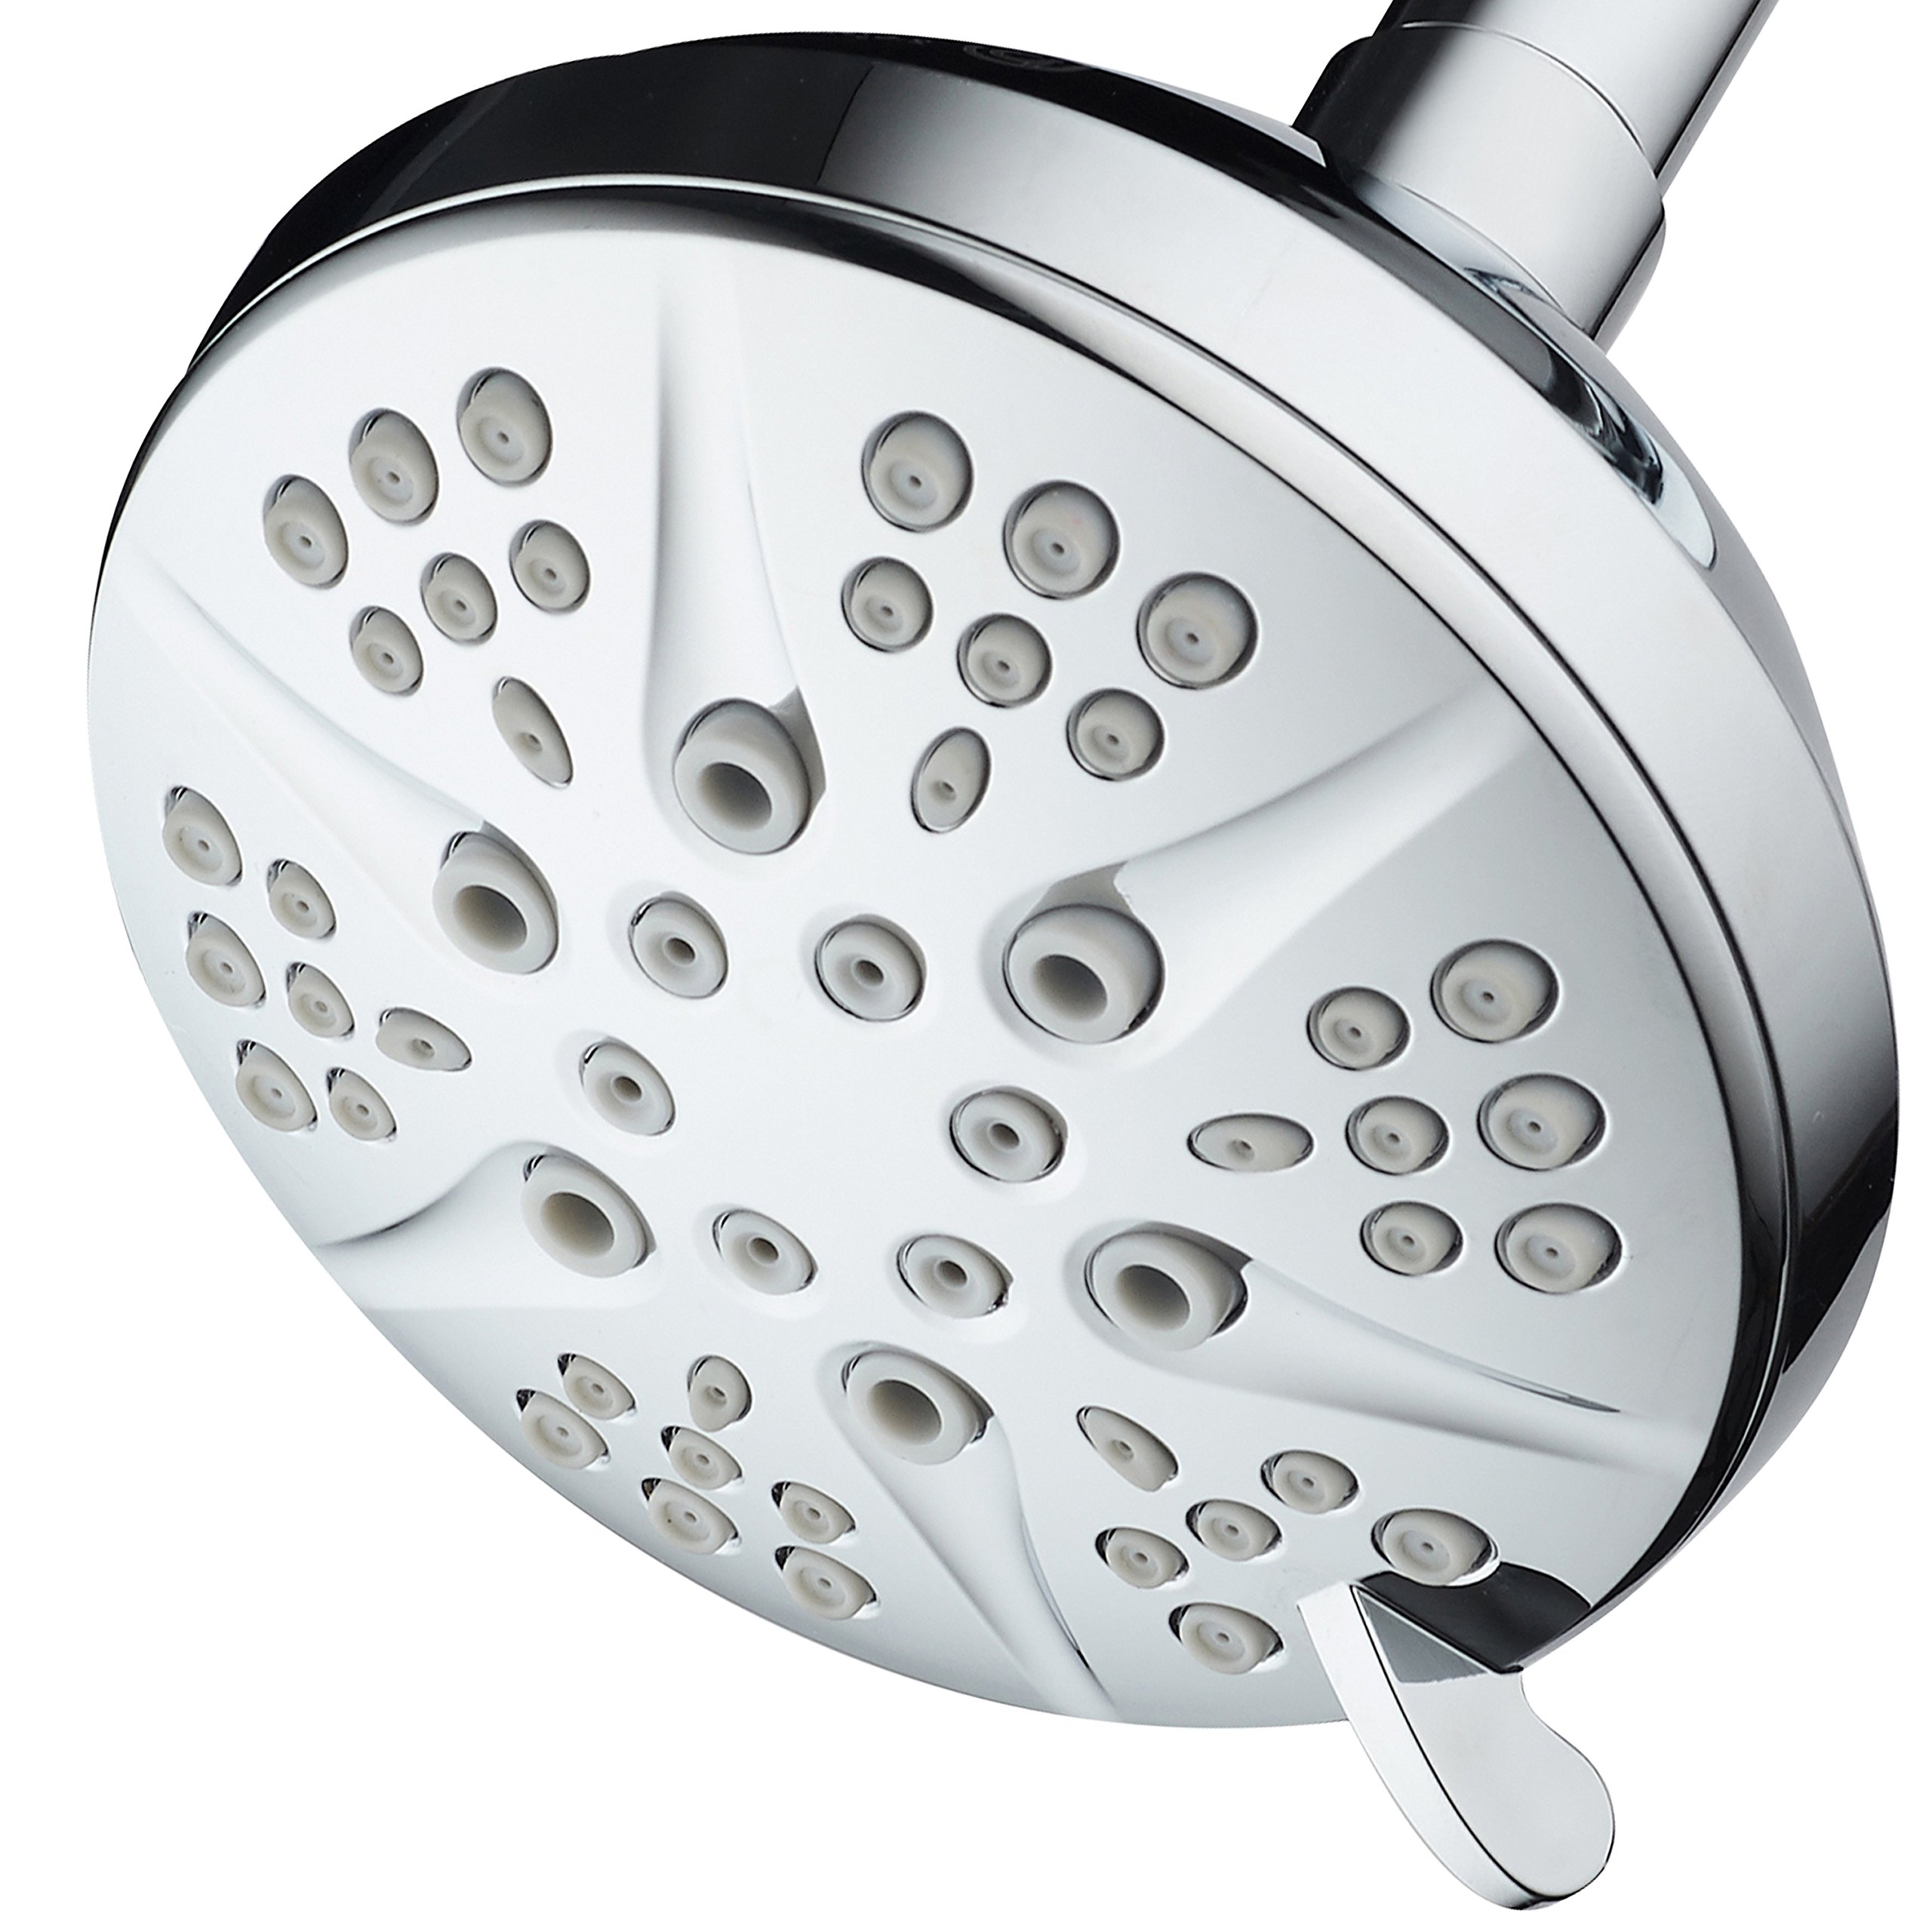 HotelSpa NOTILUS Giant High-Pressure 6-setting 4.3'' Face Modern Luxury Spa Shower Head - Solid Brass Metal Connection Nut, Angle-Adjustable Ball Joint, Anti-Clog Jets, All-Chrome Finish,